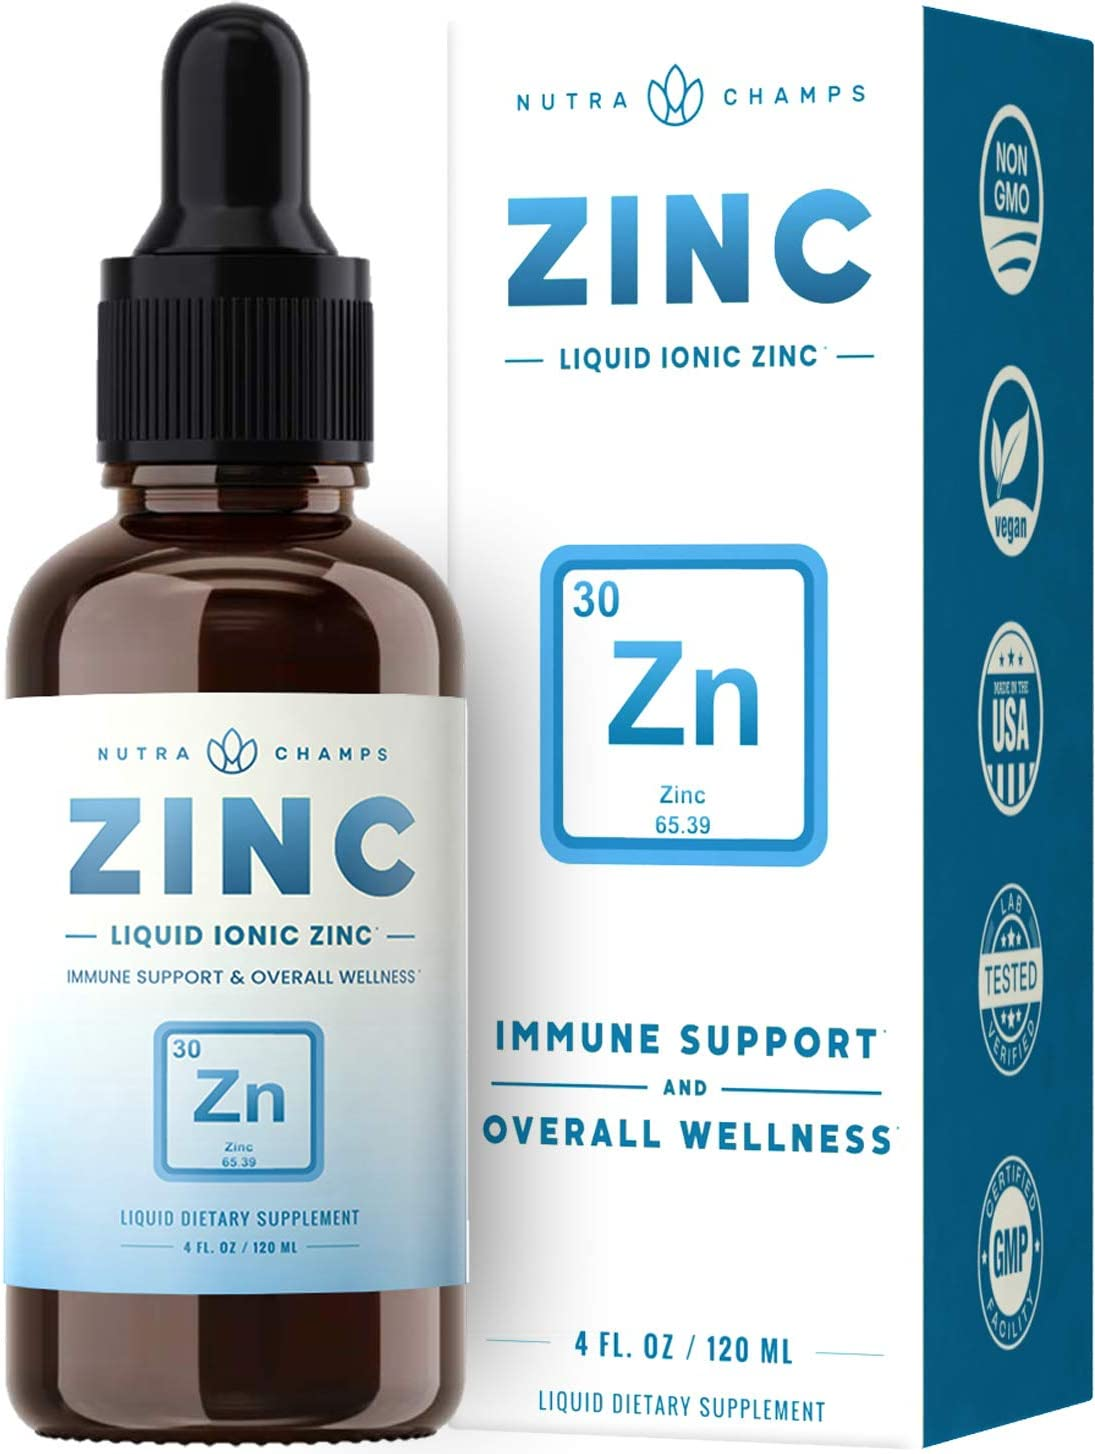 Organic Zinc Sulfate Liquid Supplement - Immune Support System Boost - Pure Ionic Concentrated Mineral Drops for Men, Women & Kids Enhanced with Vitamin C - 4 oz Great Tasting Defense Booster: Health & Personal Care